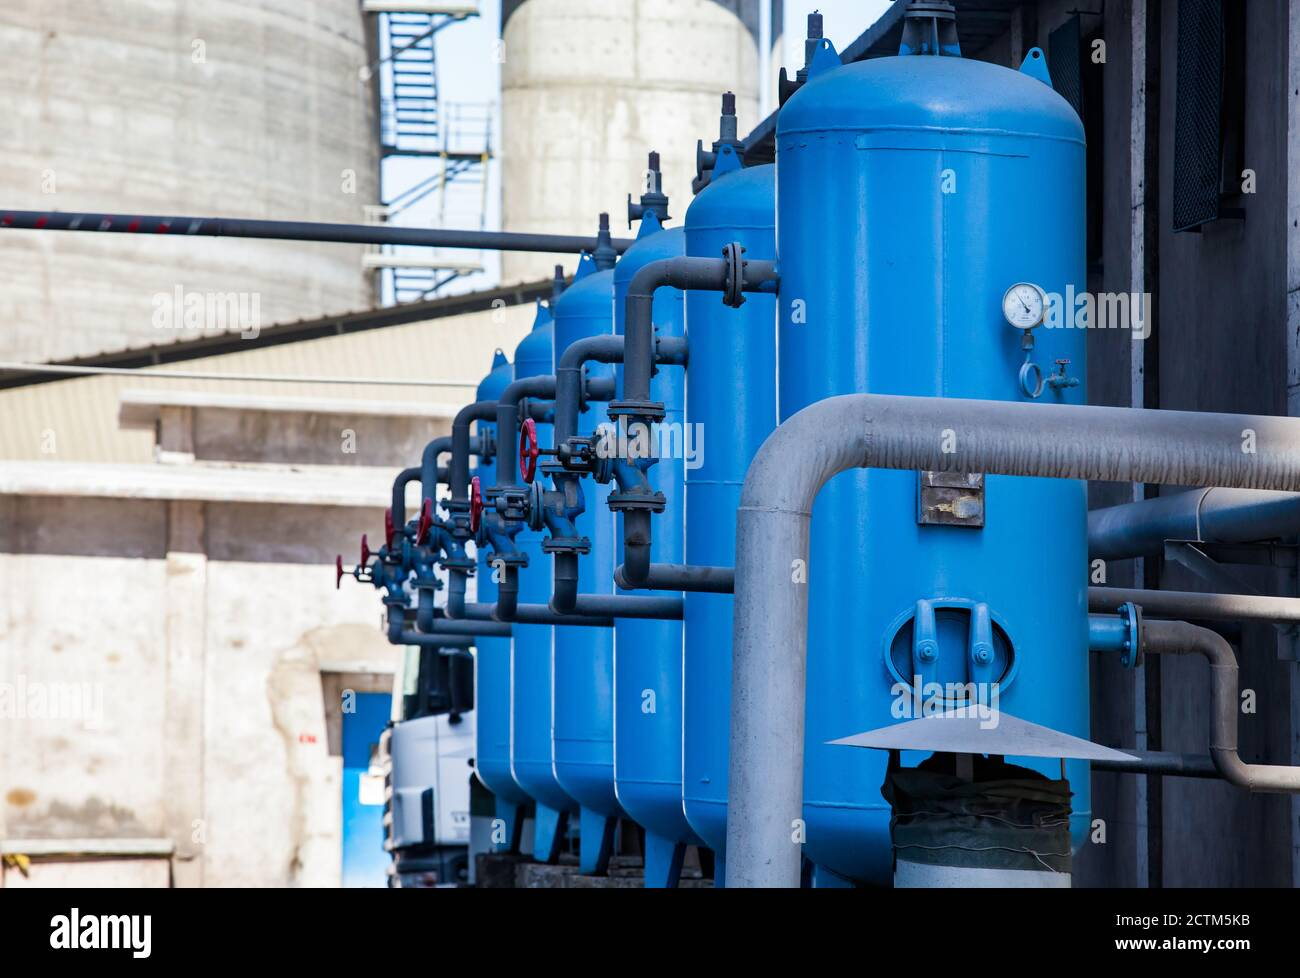 Mynaral/Kazakhstan - April 23 2012: Jambyl Cement plant. Water purification station. Blue water storage tanks with valves and pipes. Stock Photo